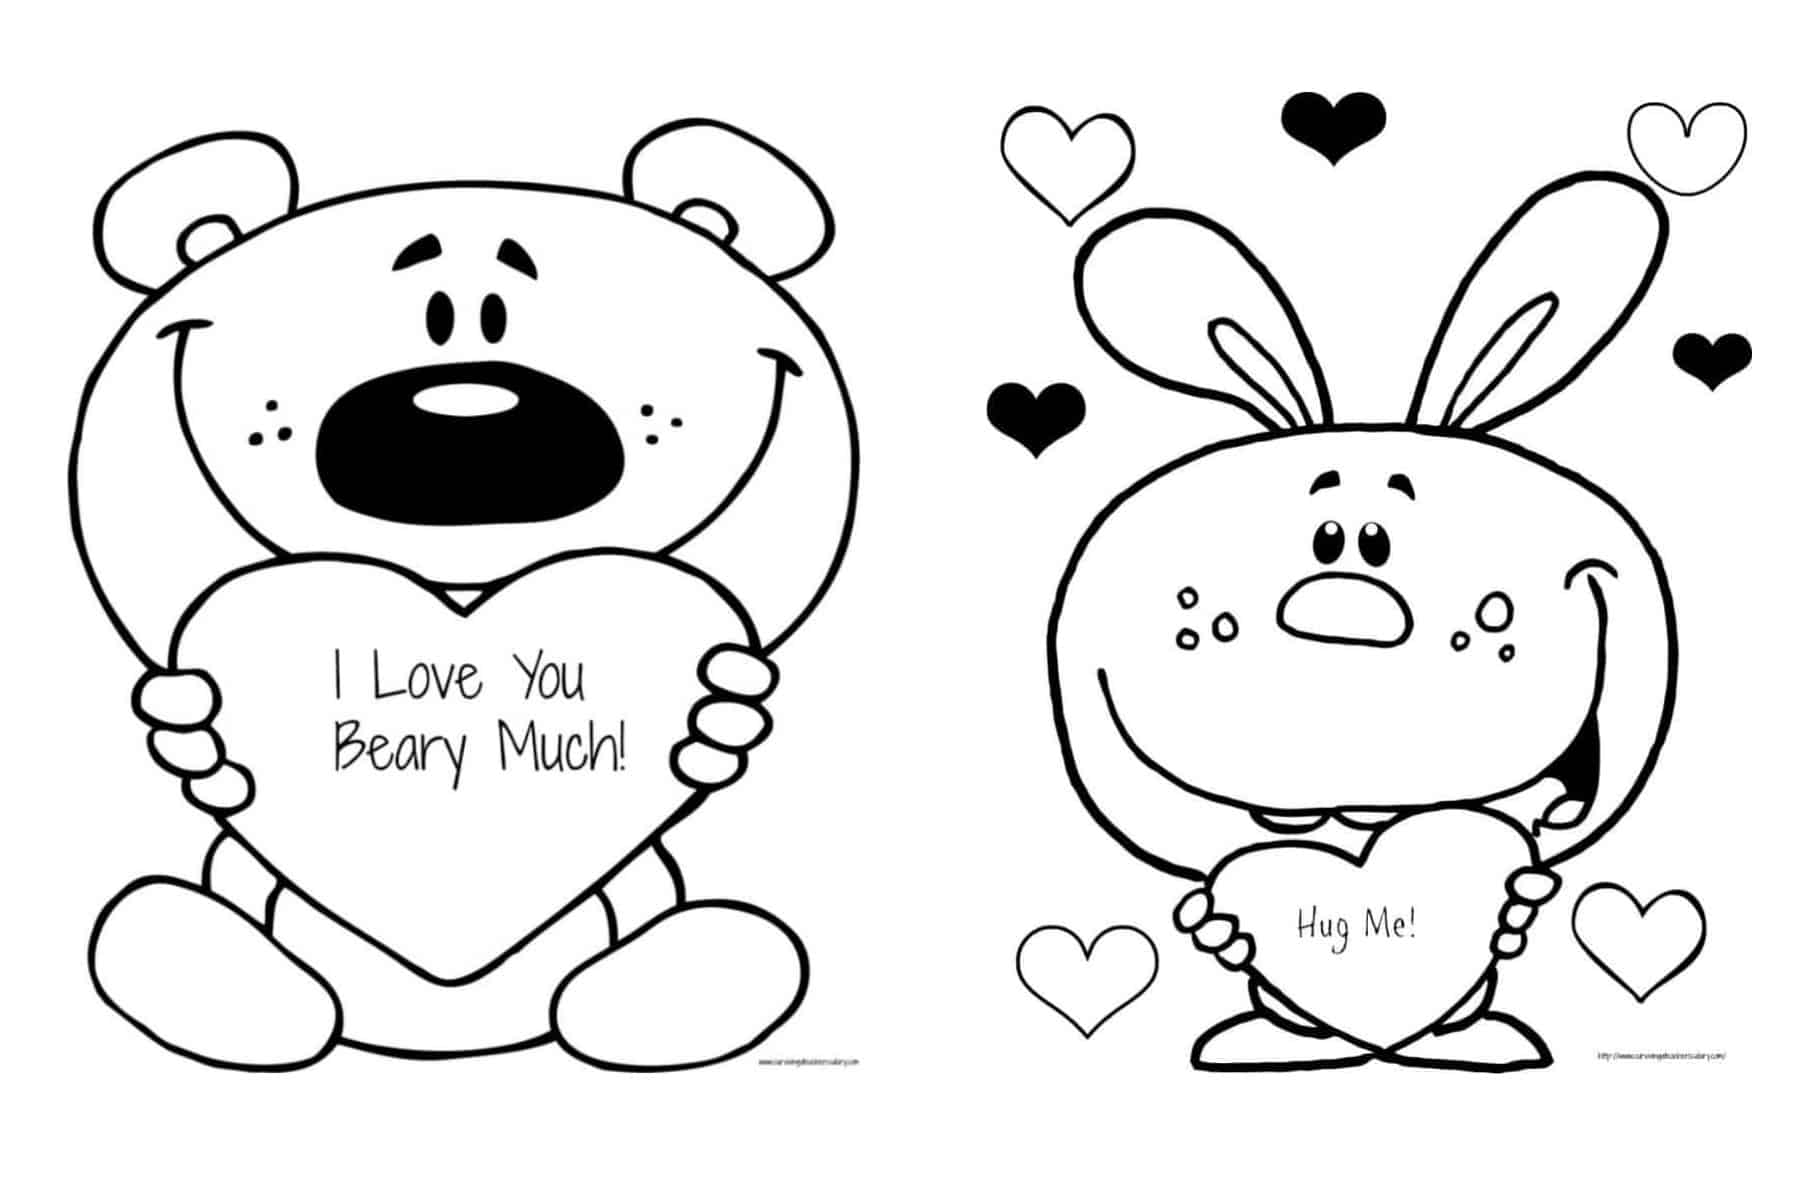 love coloring sheet free valentine39s quoti love you beary muchquot coloring page sheet love coloring